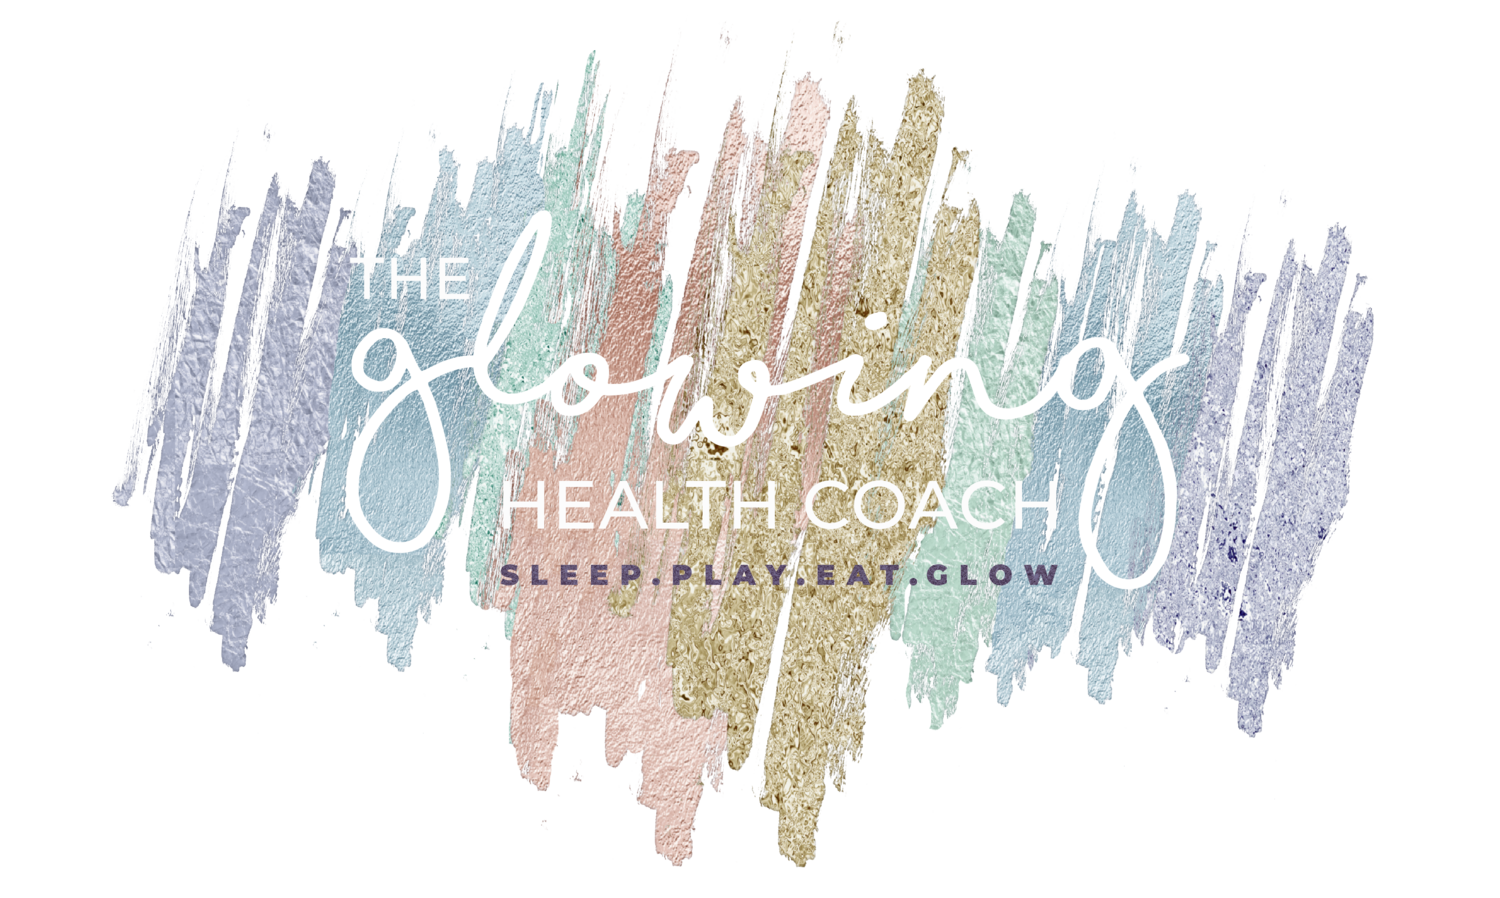 The Glowing Health Coach